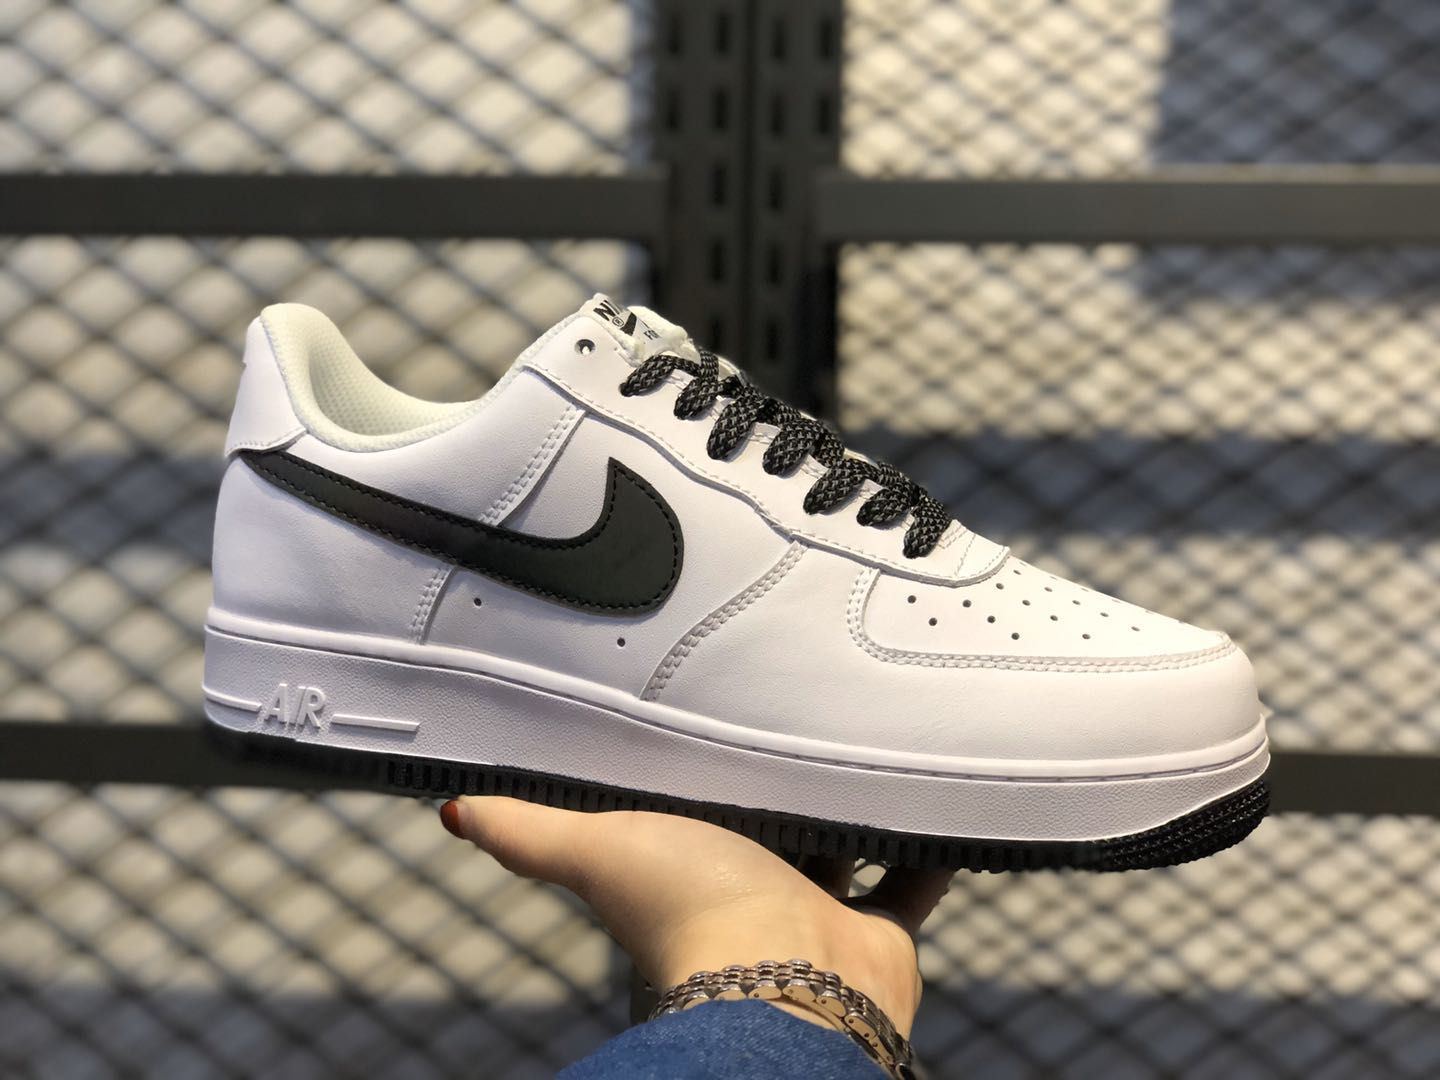 """Nike Air Force 1 Low """"White/Static Black"""" Hot Sale 366751-808"""